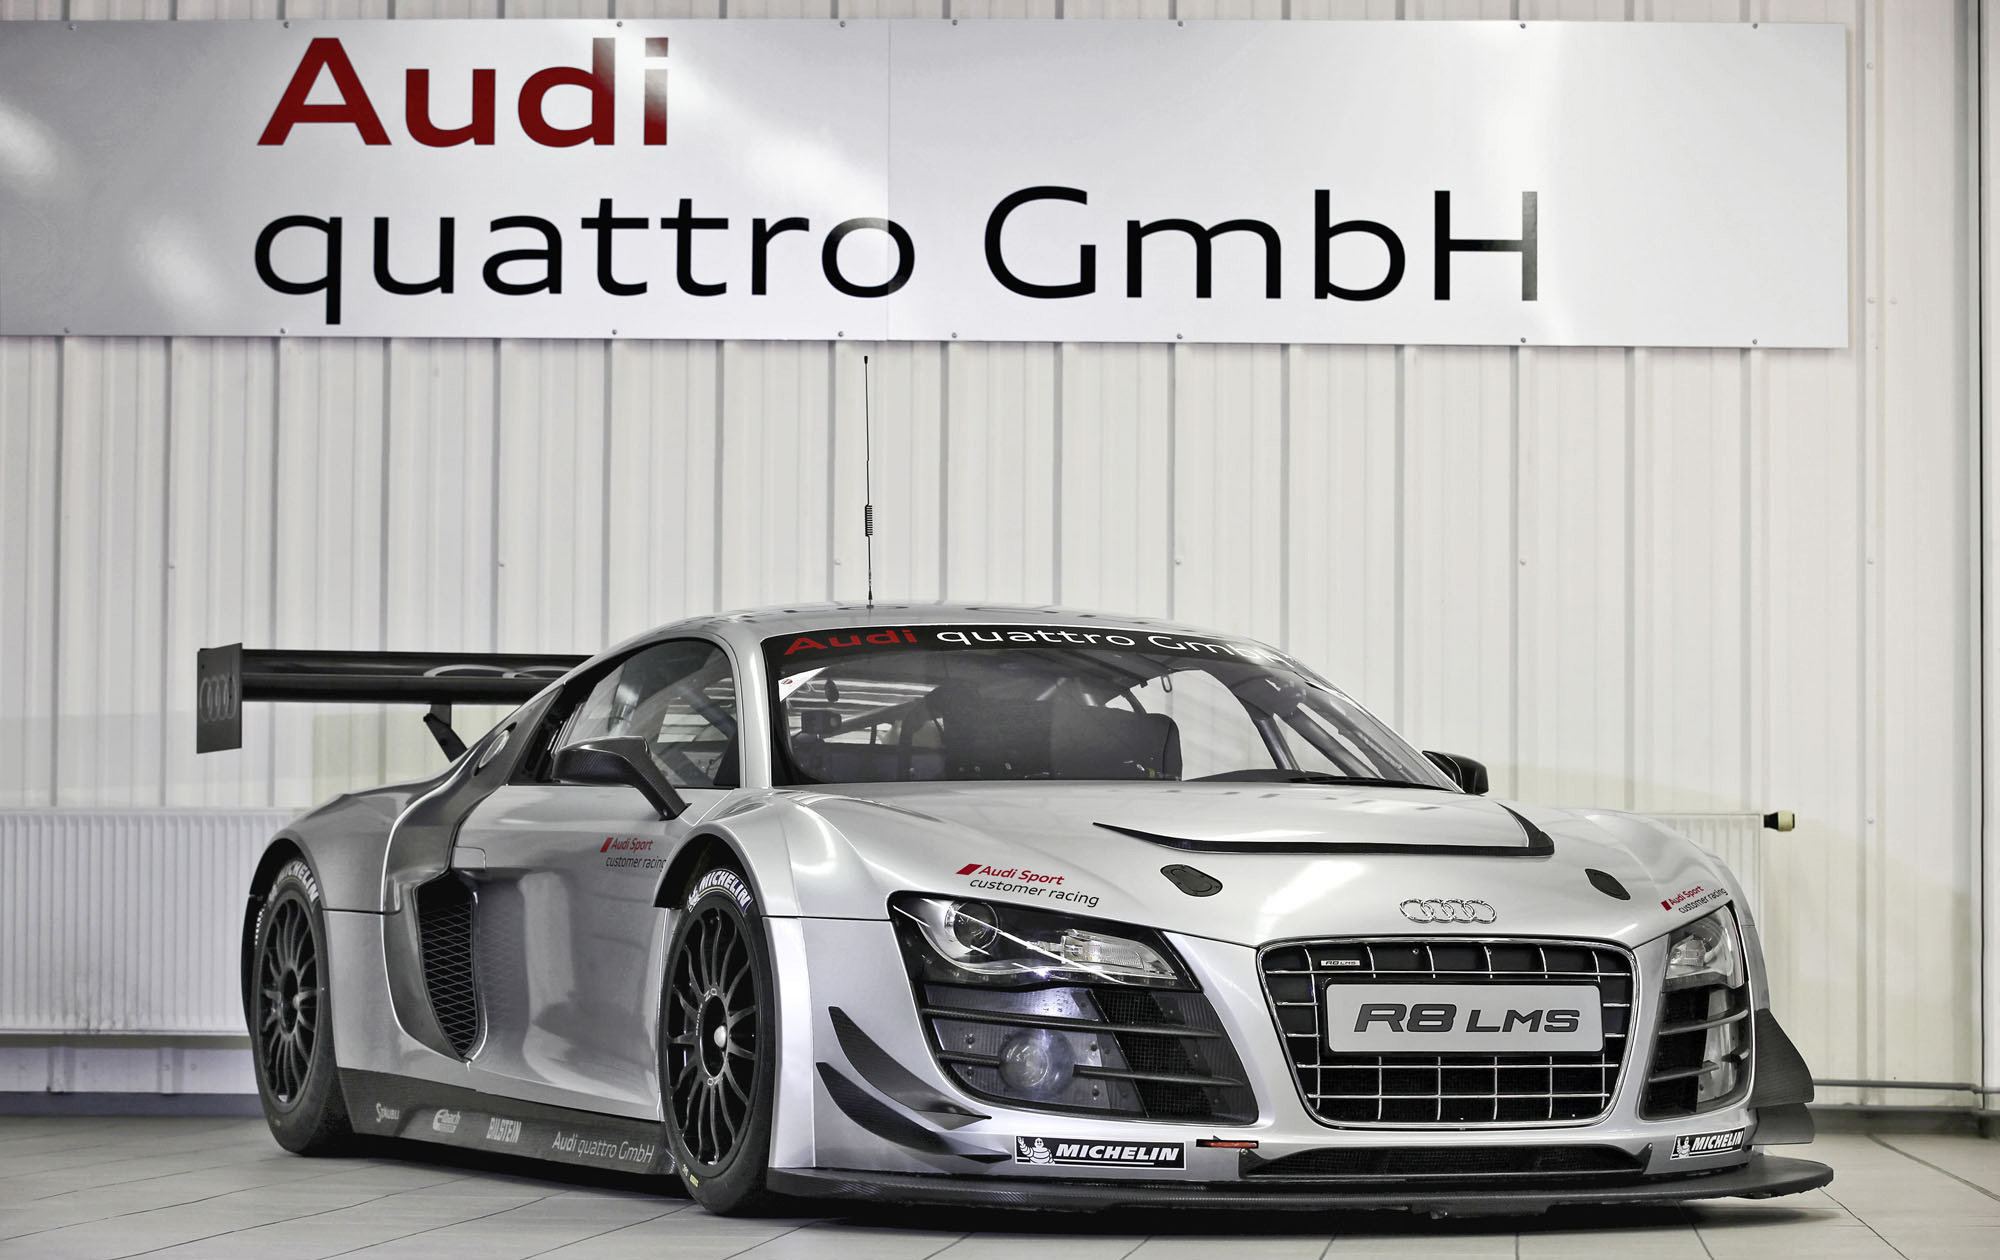 2012 Audi R8 LMS Ultra Audi releases upgraded 2012 R8 LMS Ultra